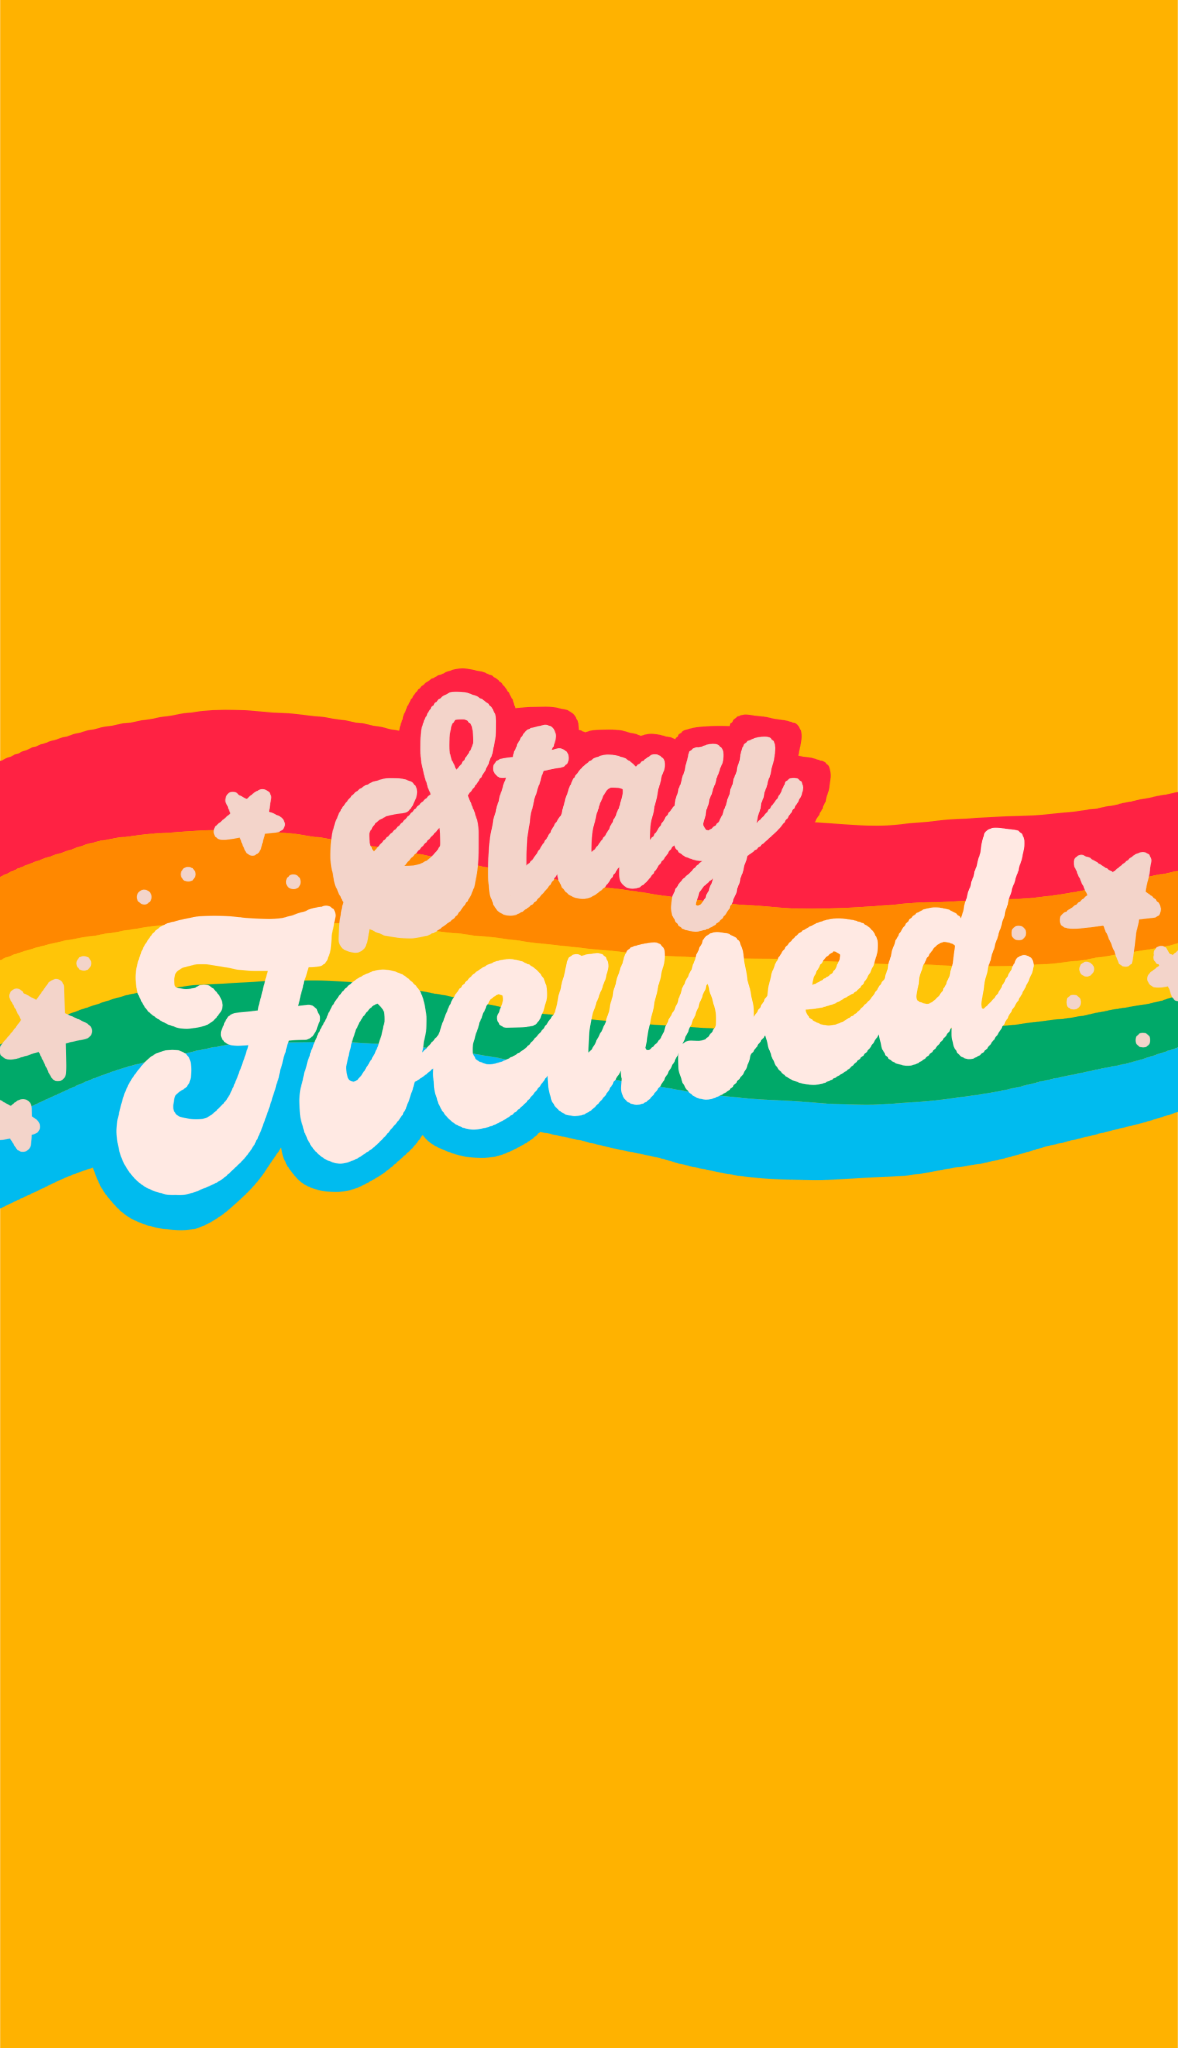 Stay Focused Rainbow Aesthetic Iphone Wallpaper By Glowingly Rainbow Aesthetic Aesthetic Iphone Wallpaper Cute Backgrounds For Iphone